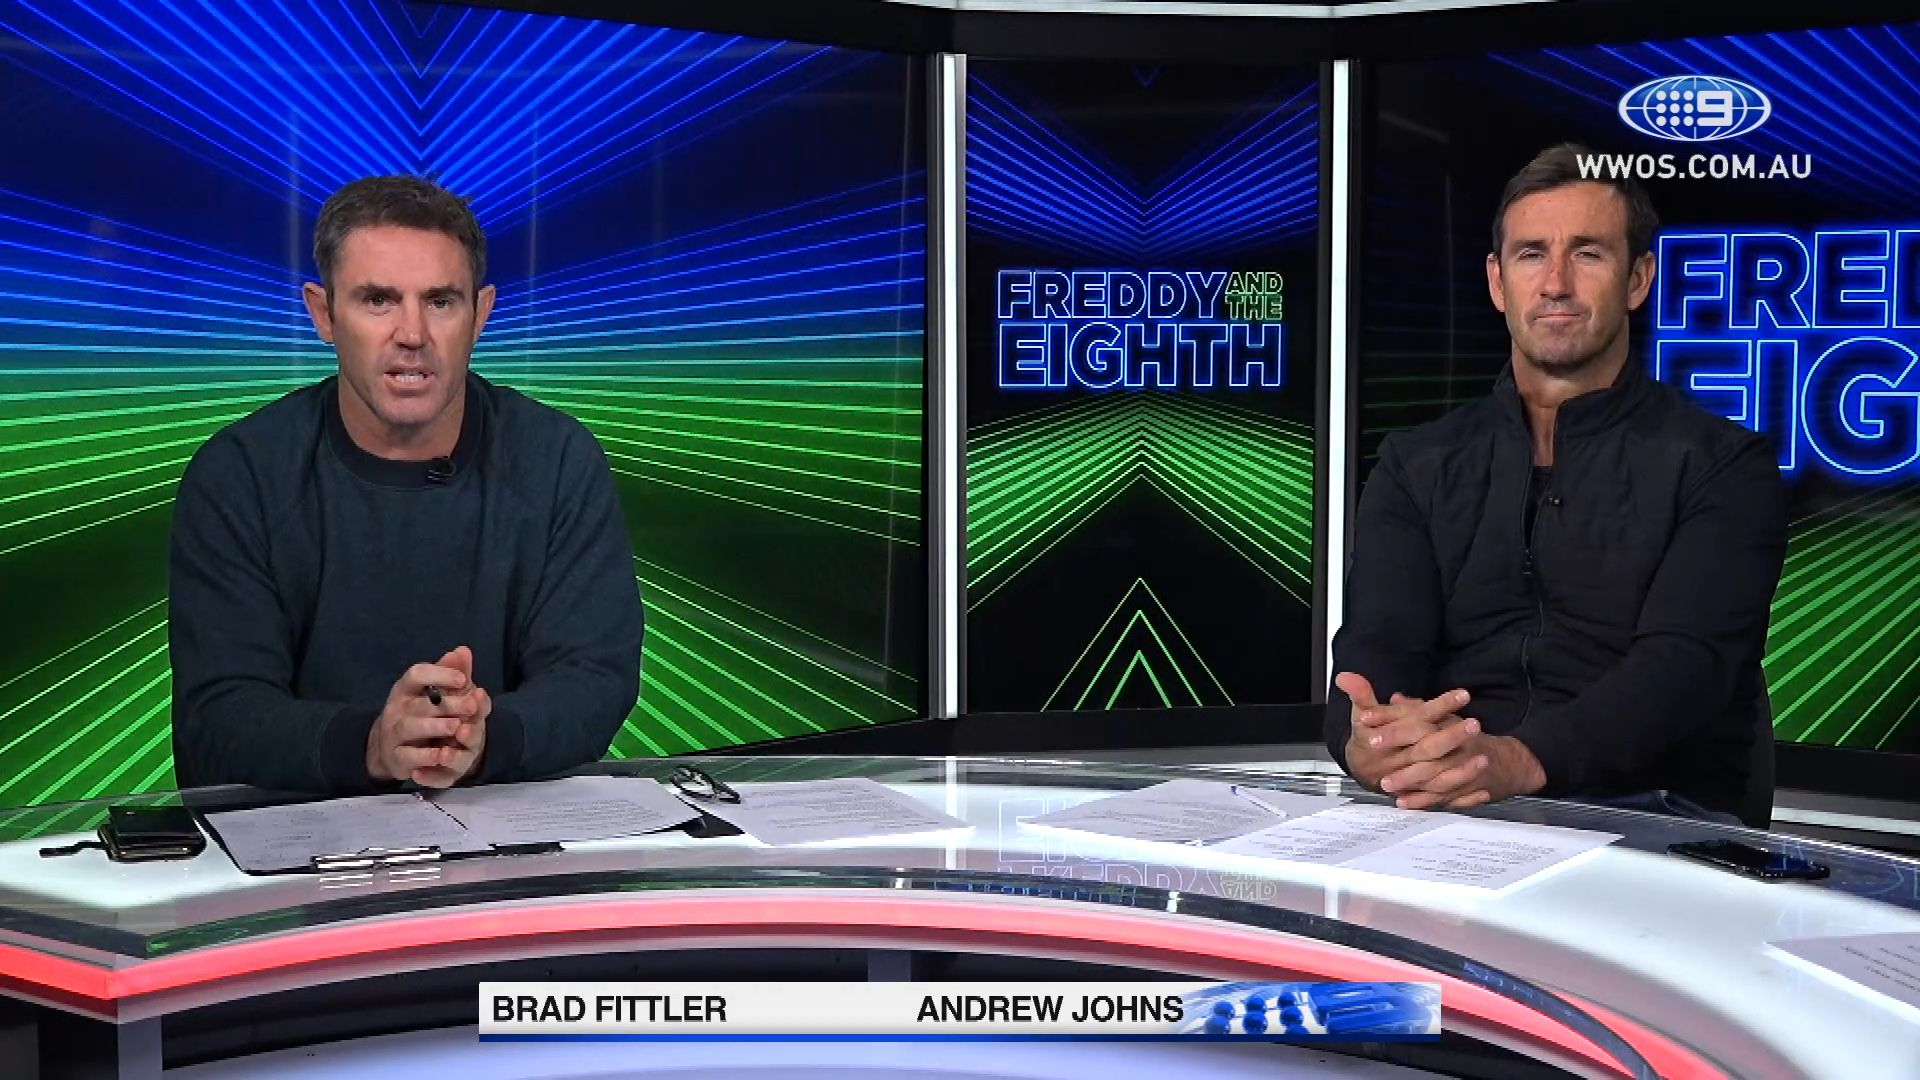 NRL Round 20 tips: Andrew Johns, Brad Fittler and Nine's experts give their predictions